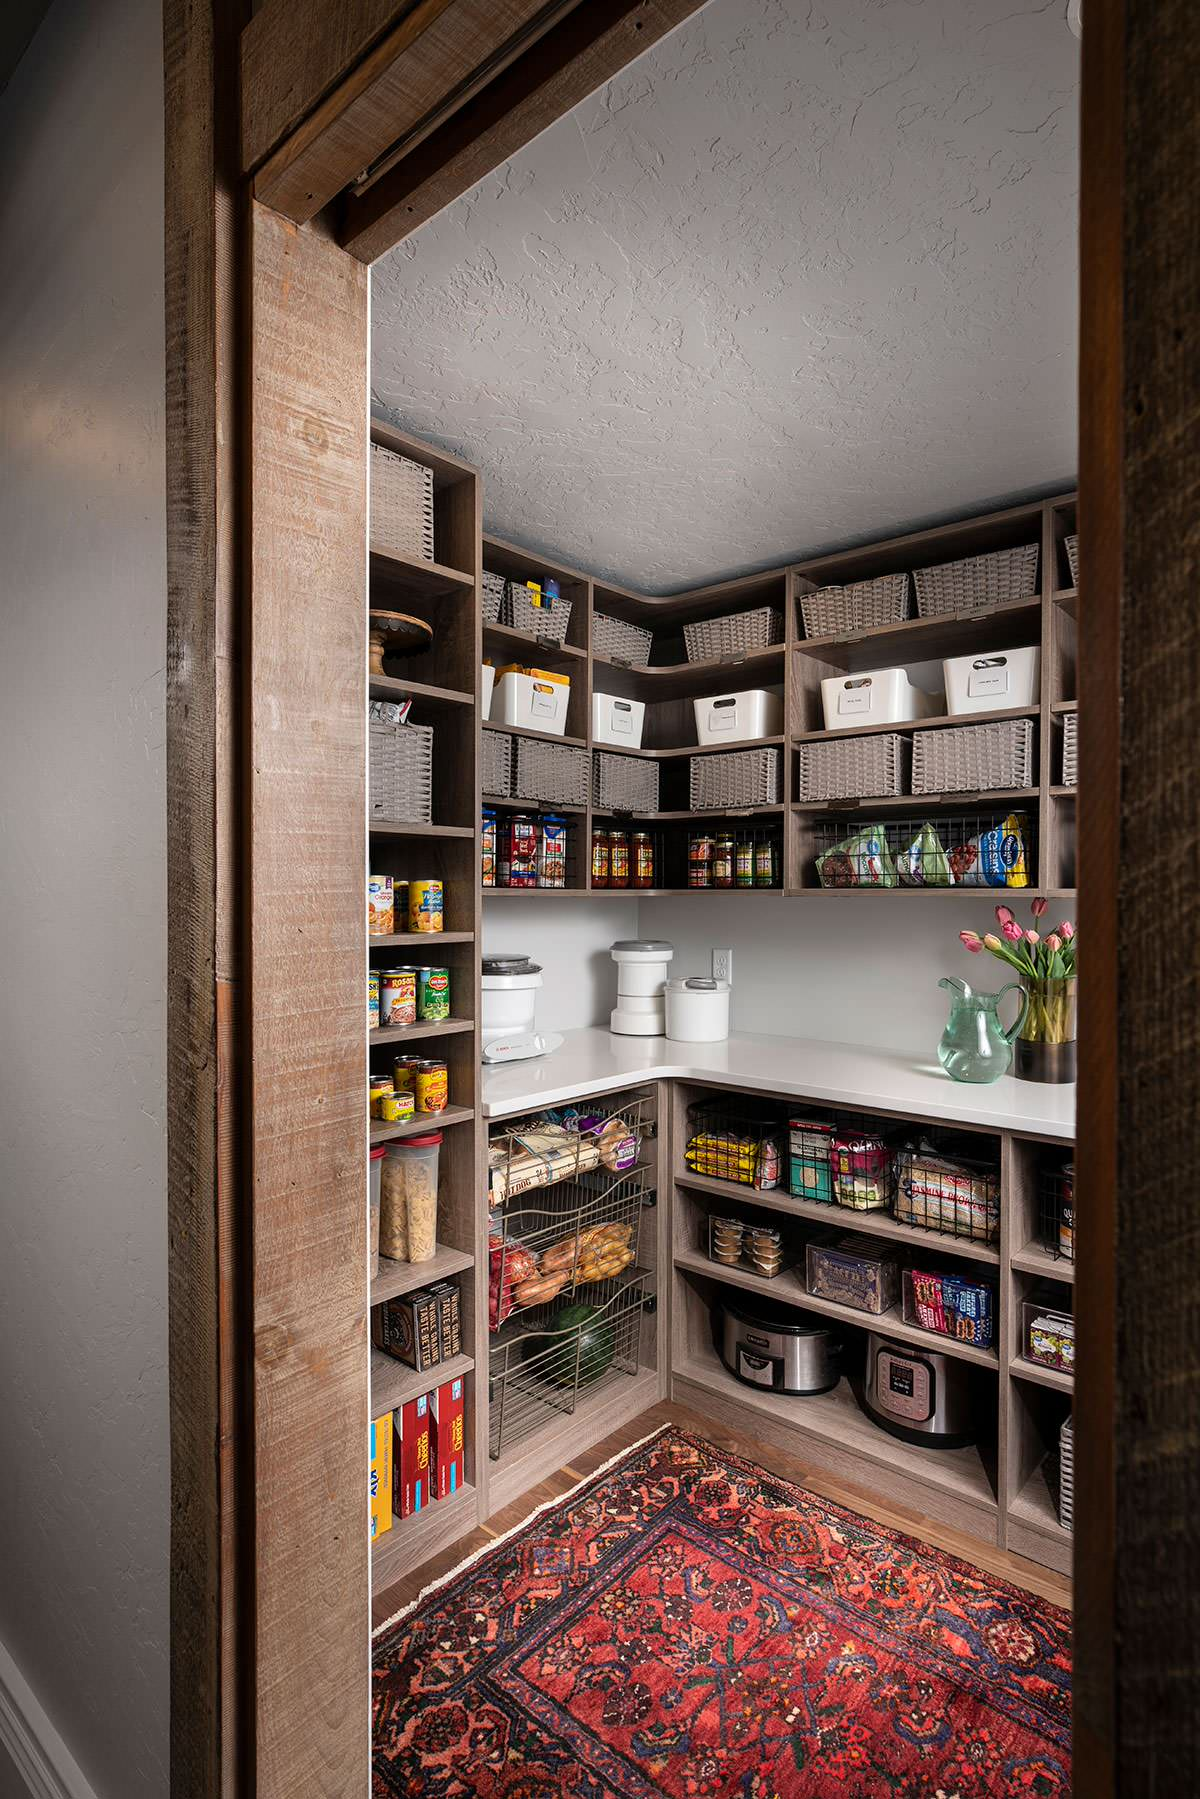 Find some extra space for a new pantry in the kitchen